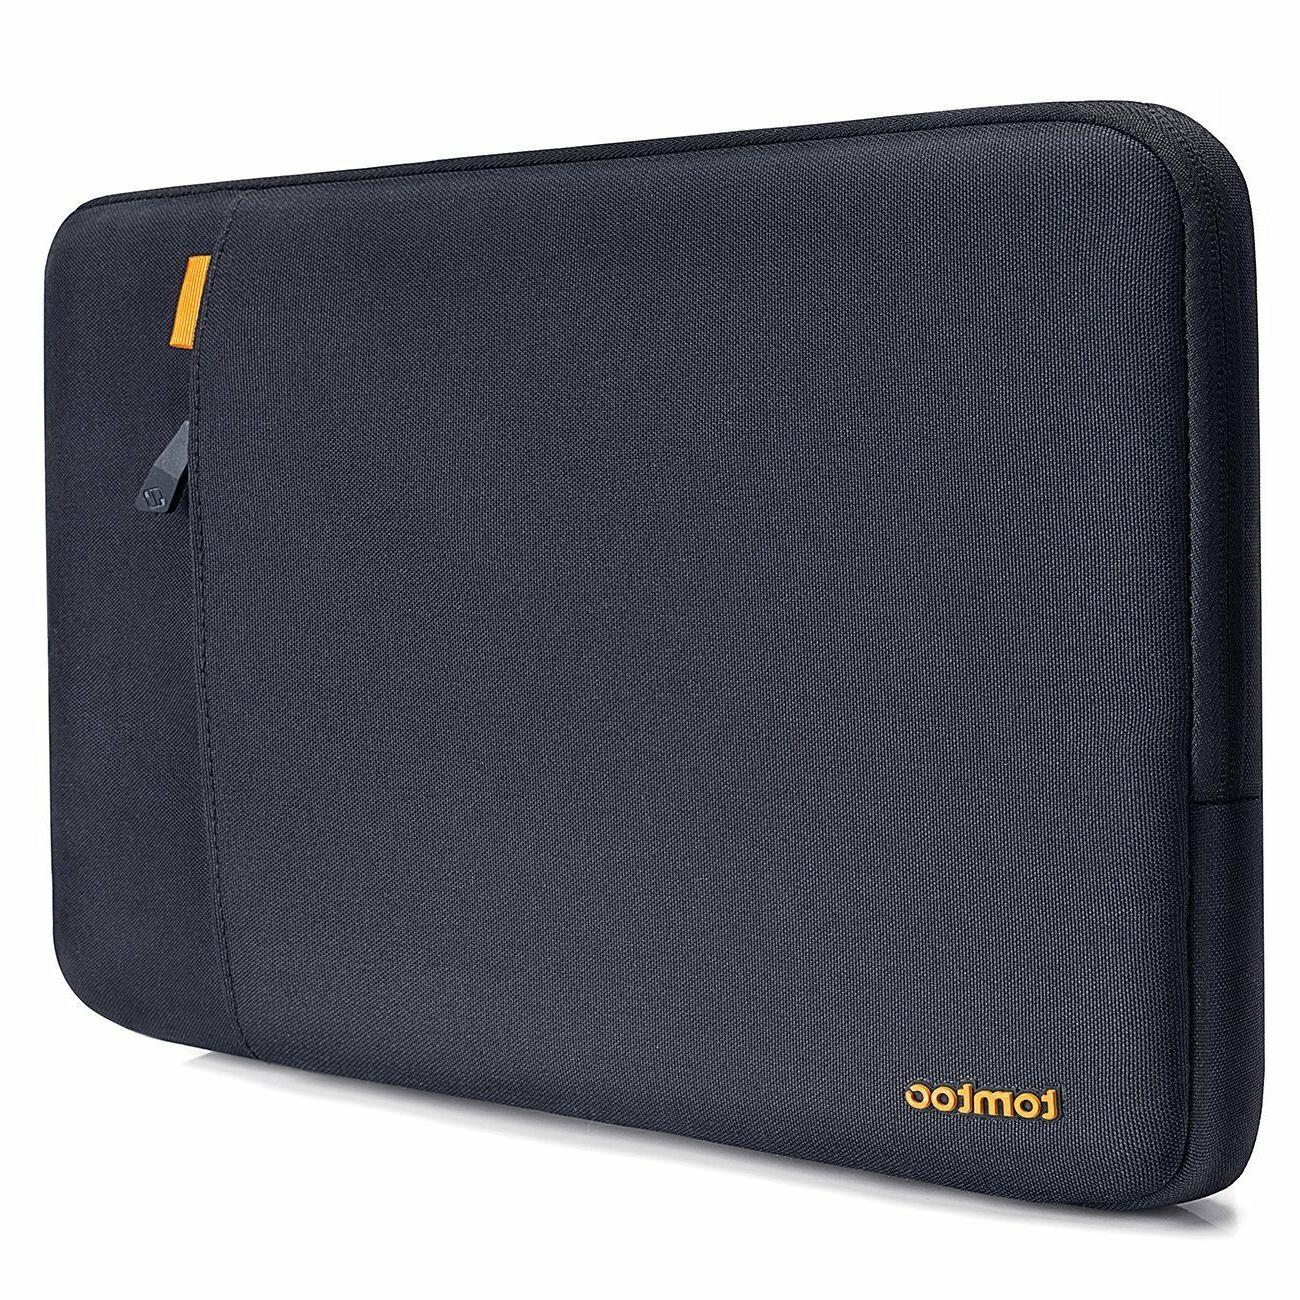 tomtoc 360 Protective Macbook Po Sleeve Case for 11.6-13 Inc